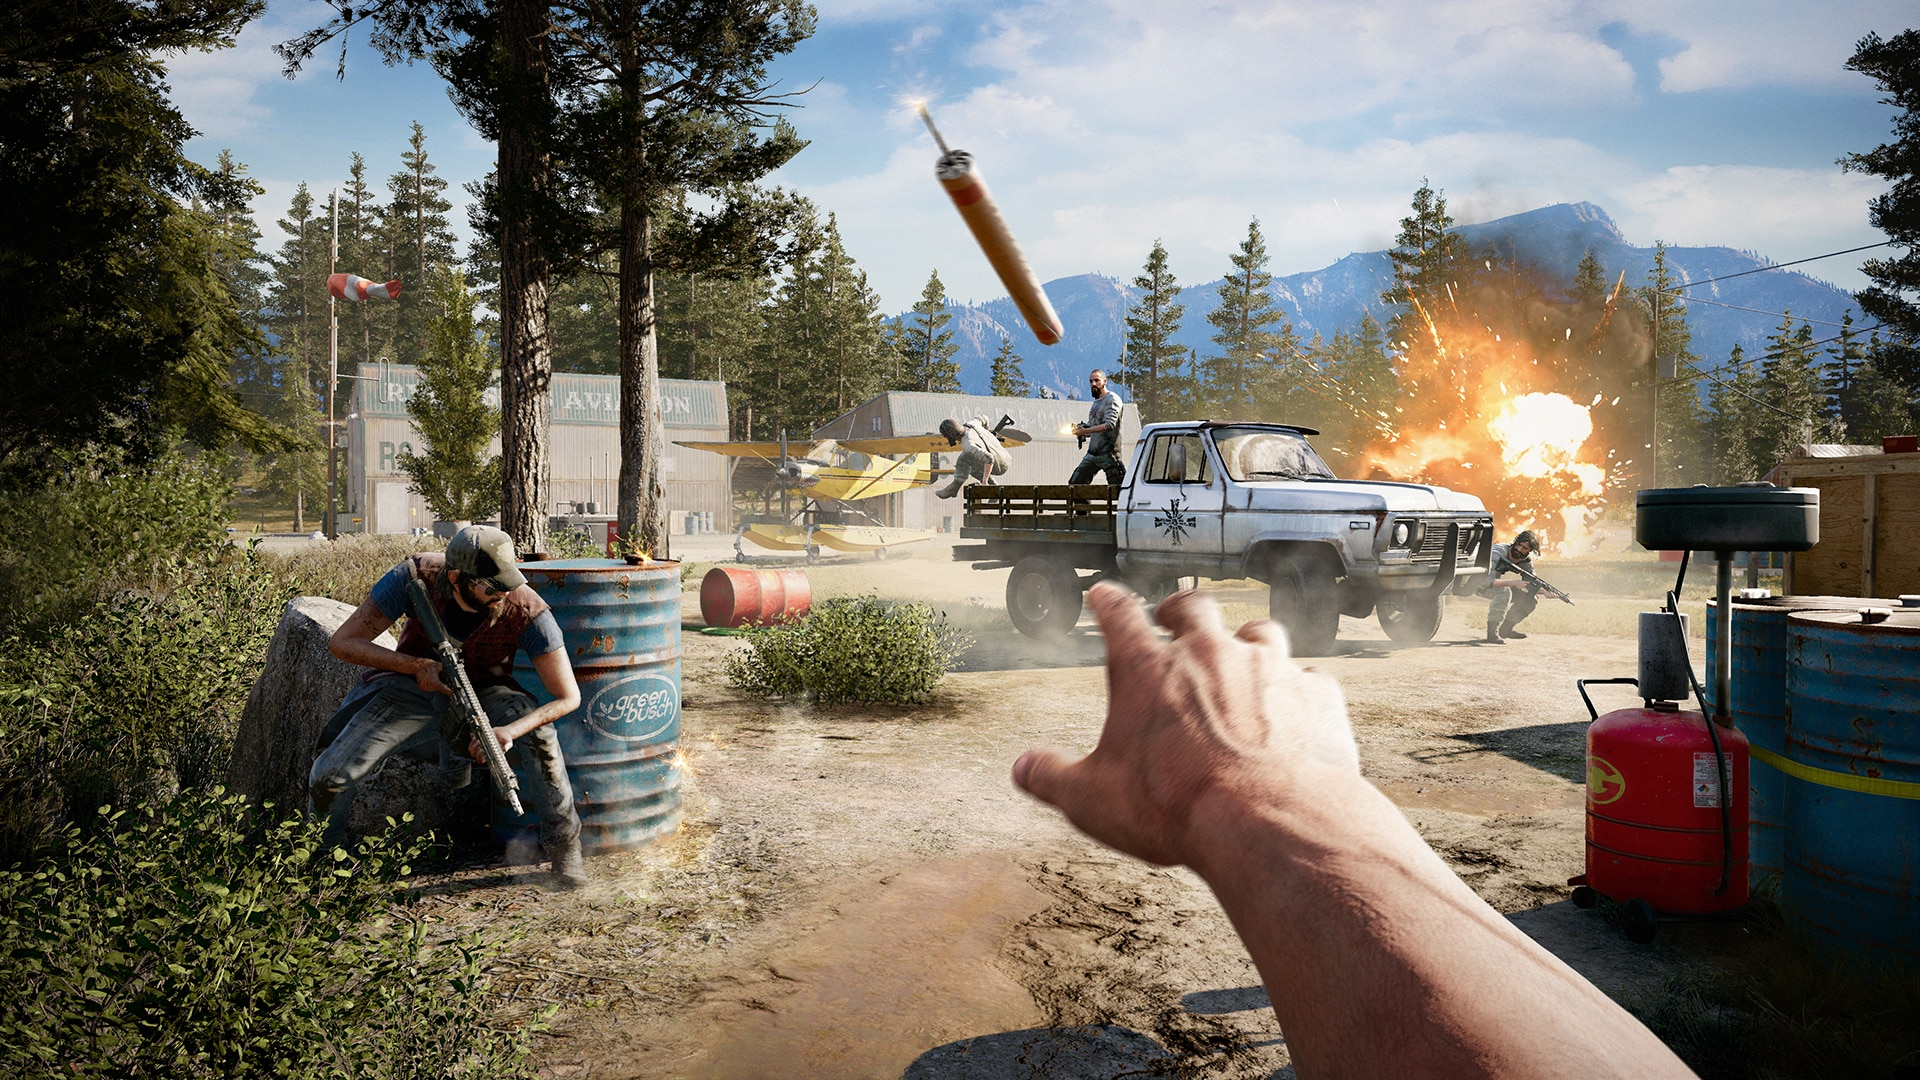 'Far Cry 5' map editor allows gamers to use 'Assassin's Creed' objects